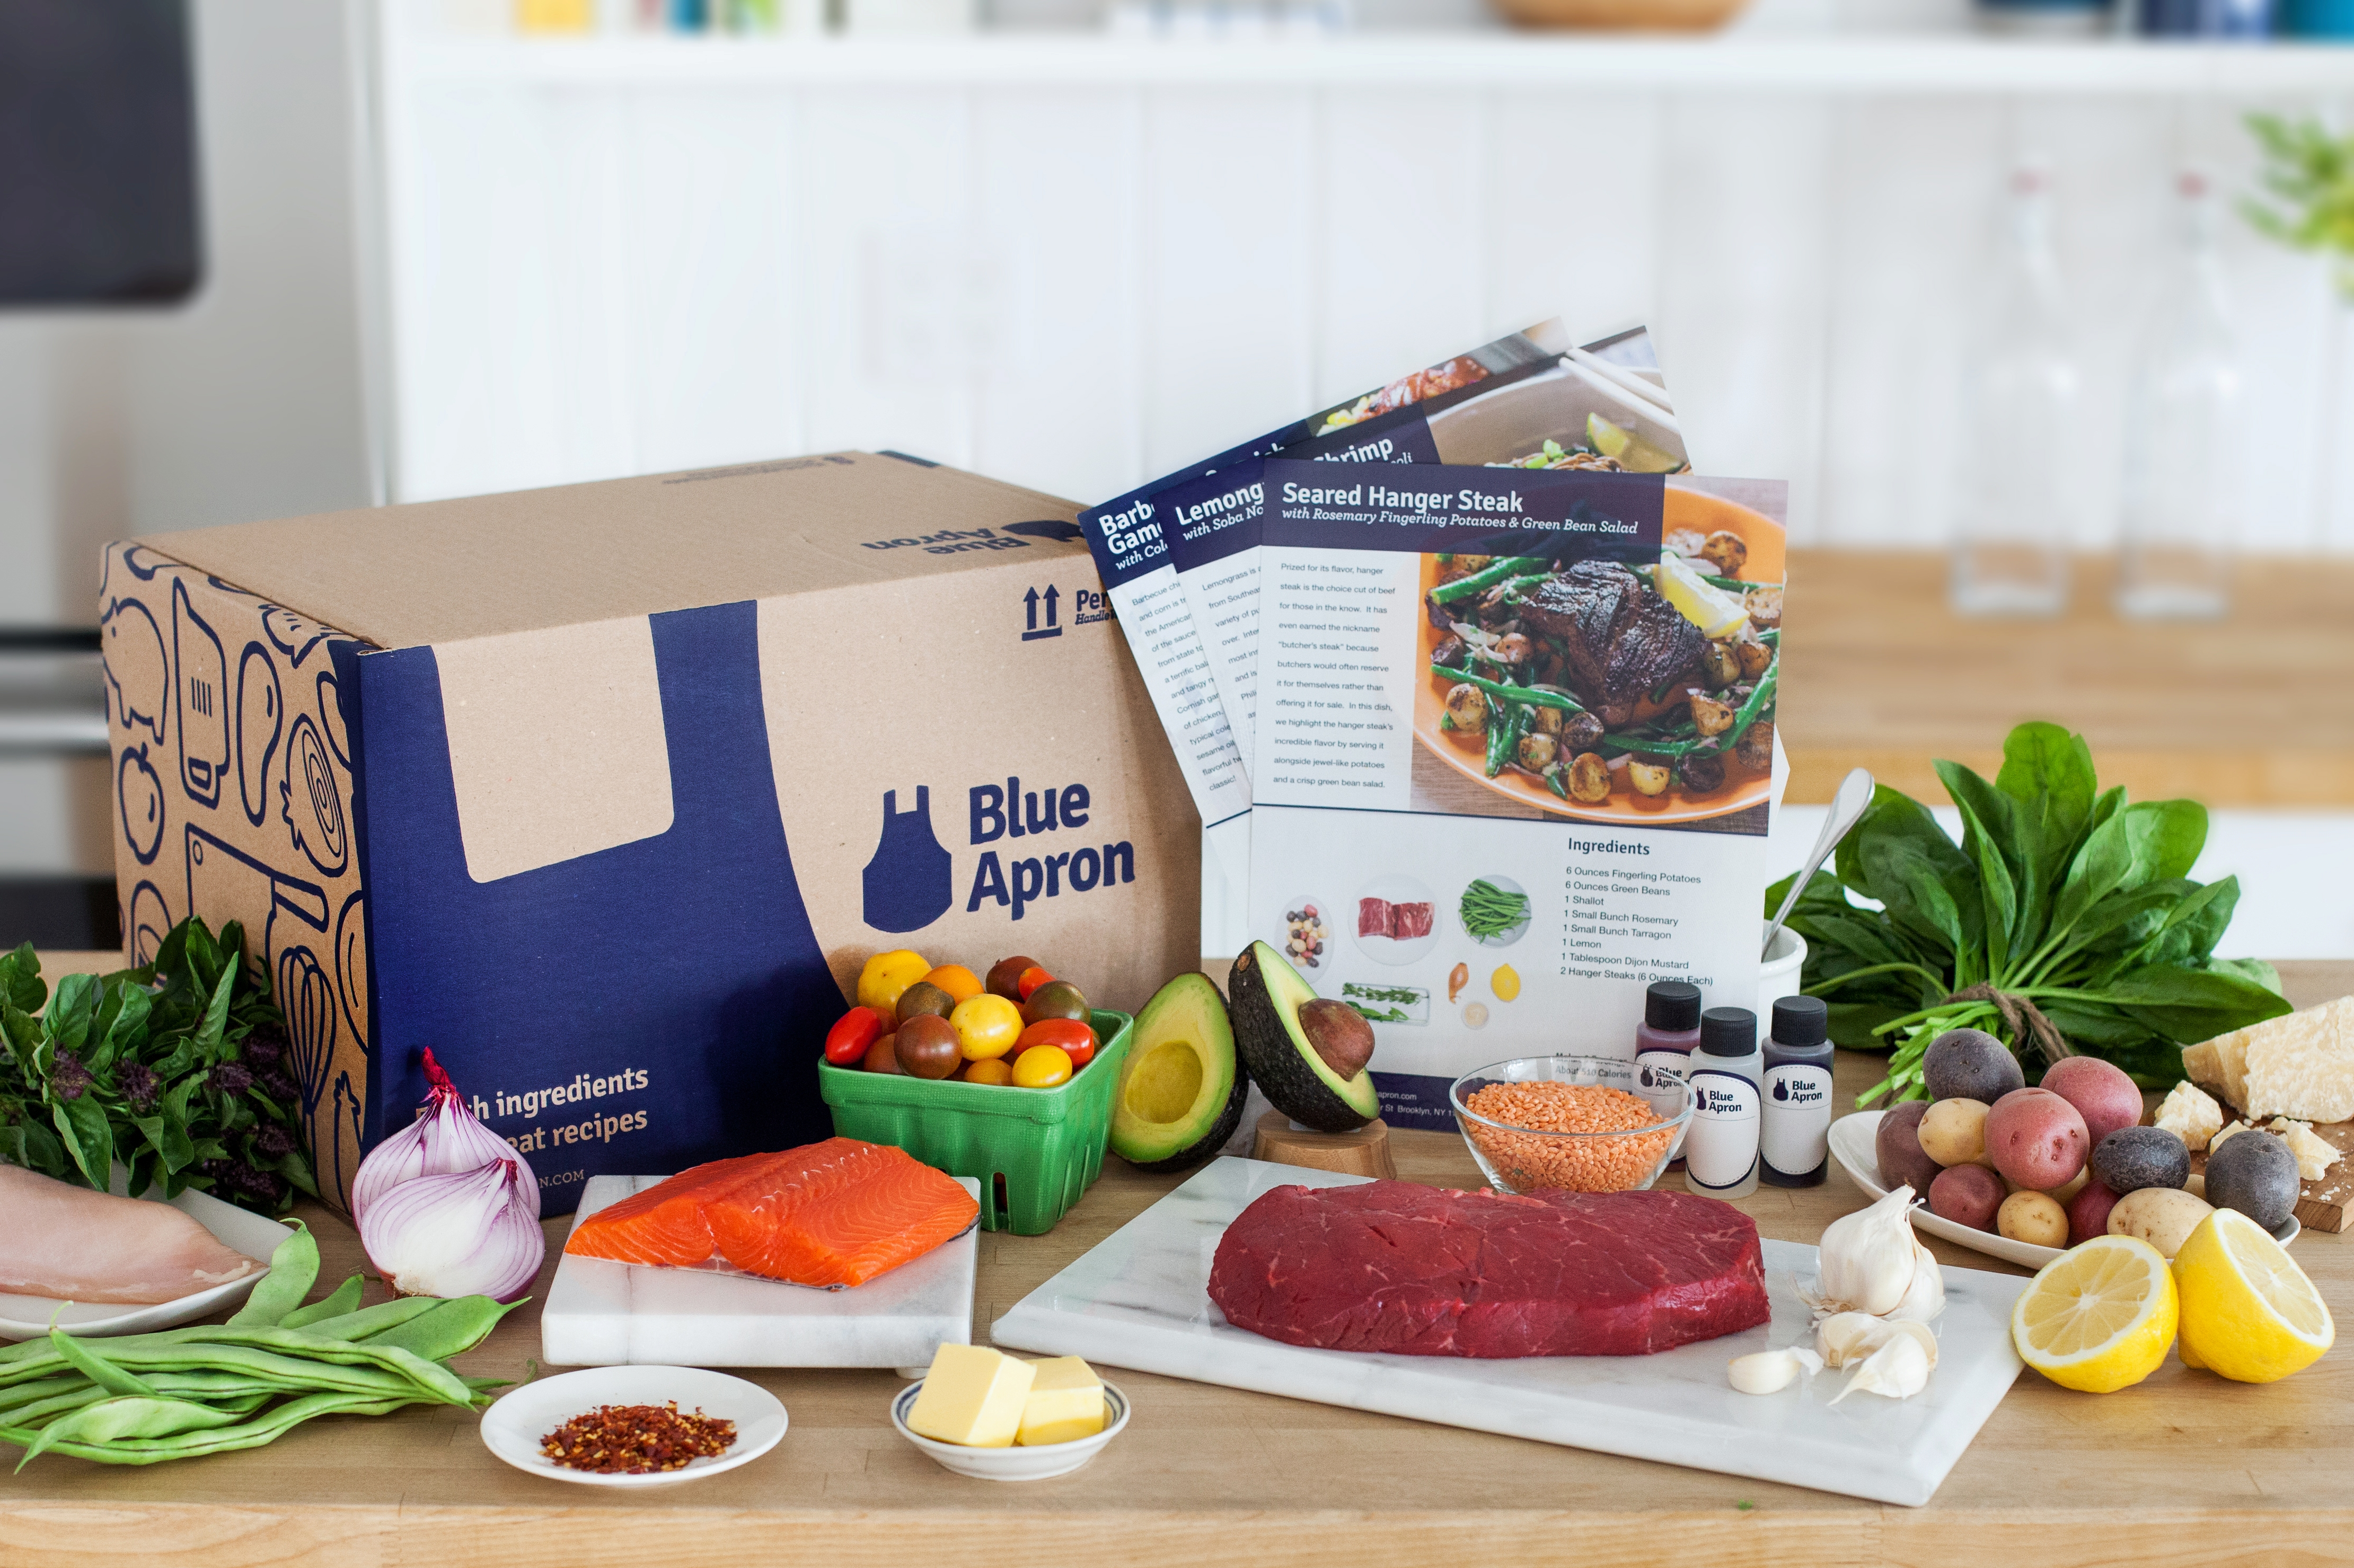 Blue apron fresh ingredients and recipes delivered to your door blue apron product shot forumfinder Choice Image